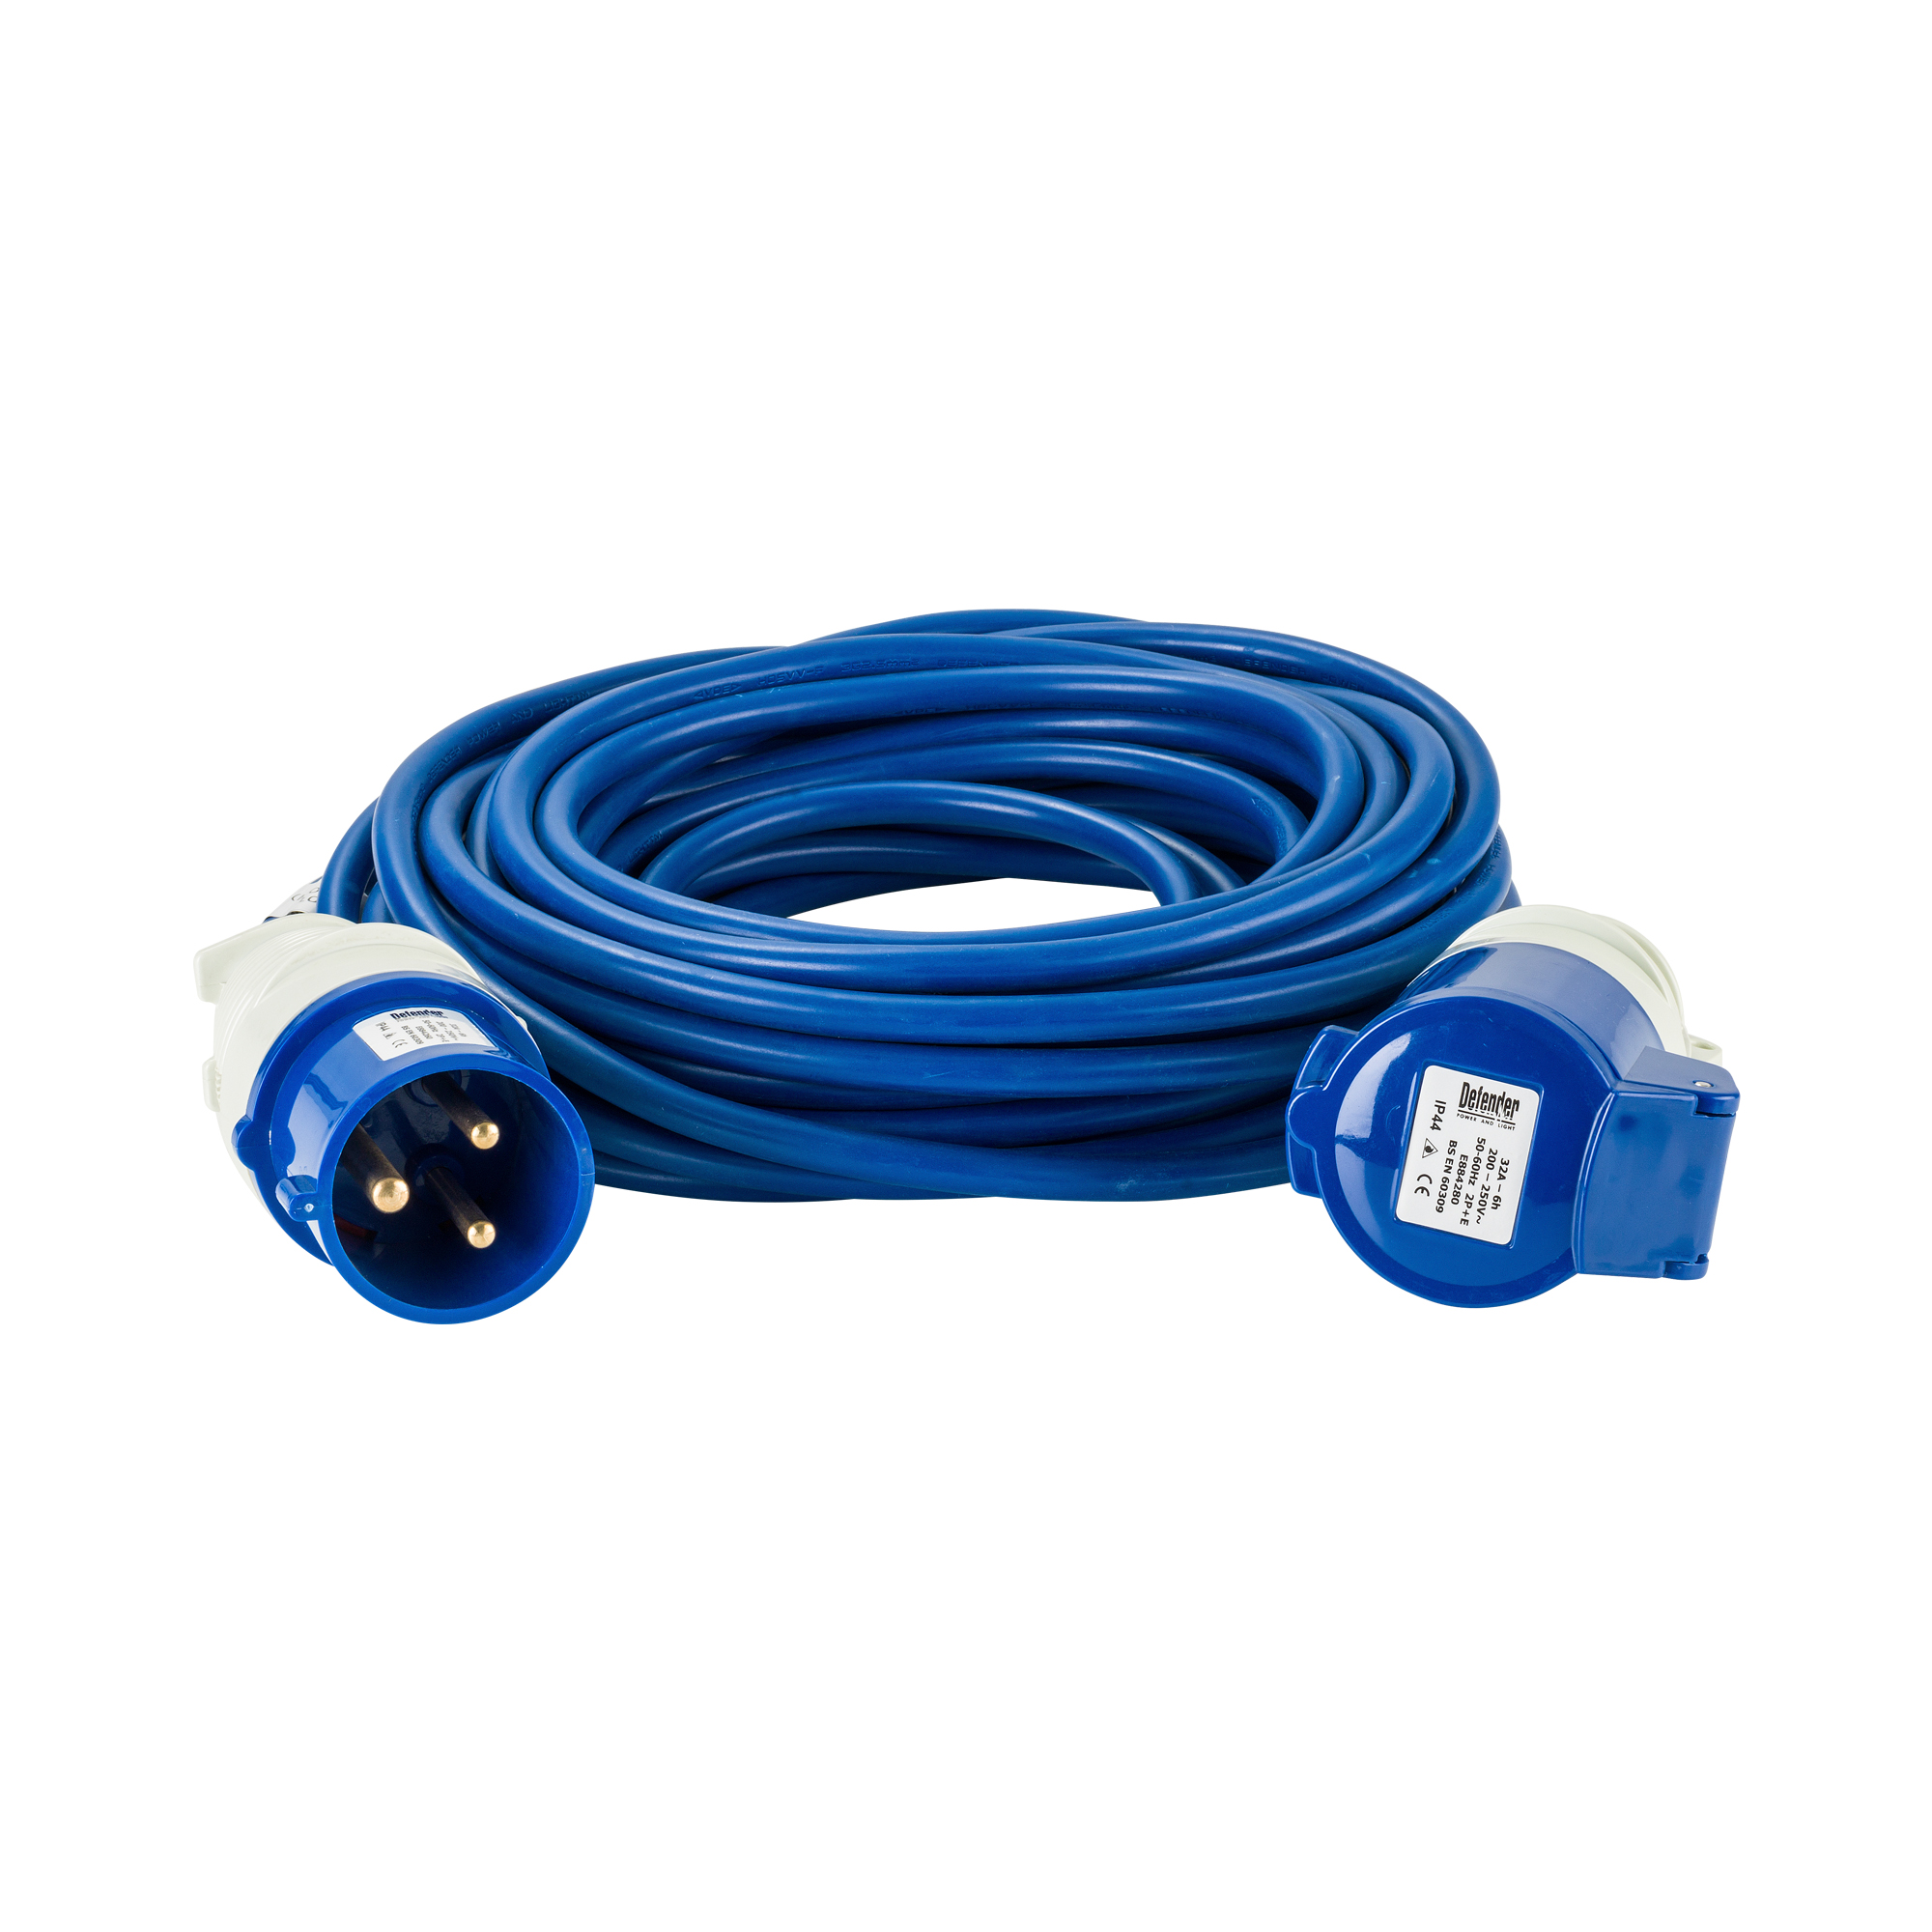 Blue Defender 14M 2.5mm 32A arctic grade 230V extension lead cable with Defender plug and coupler, on a white background